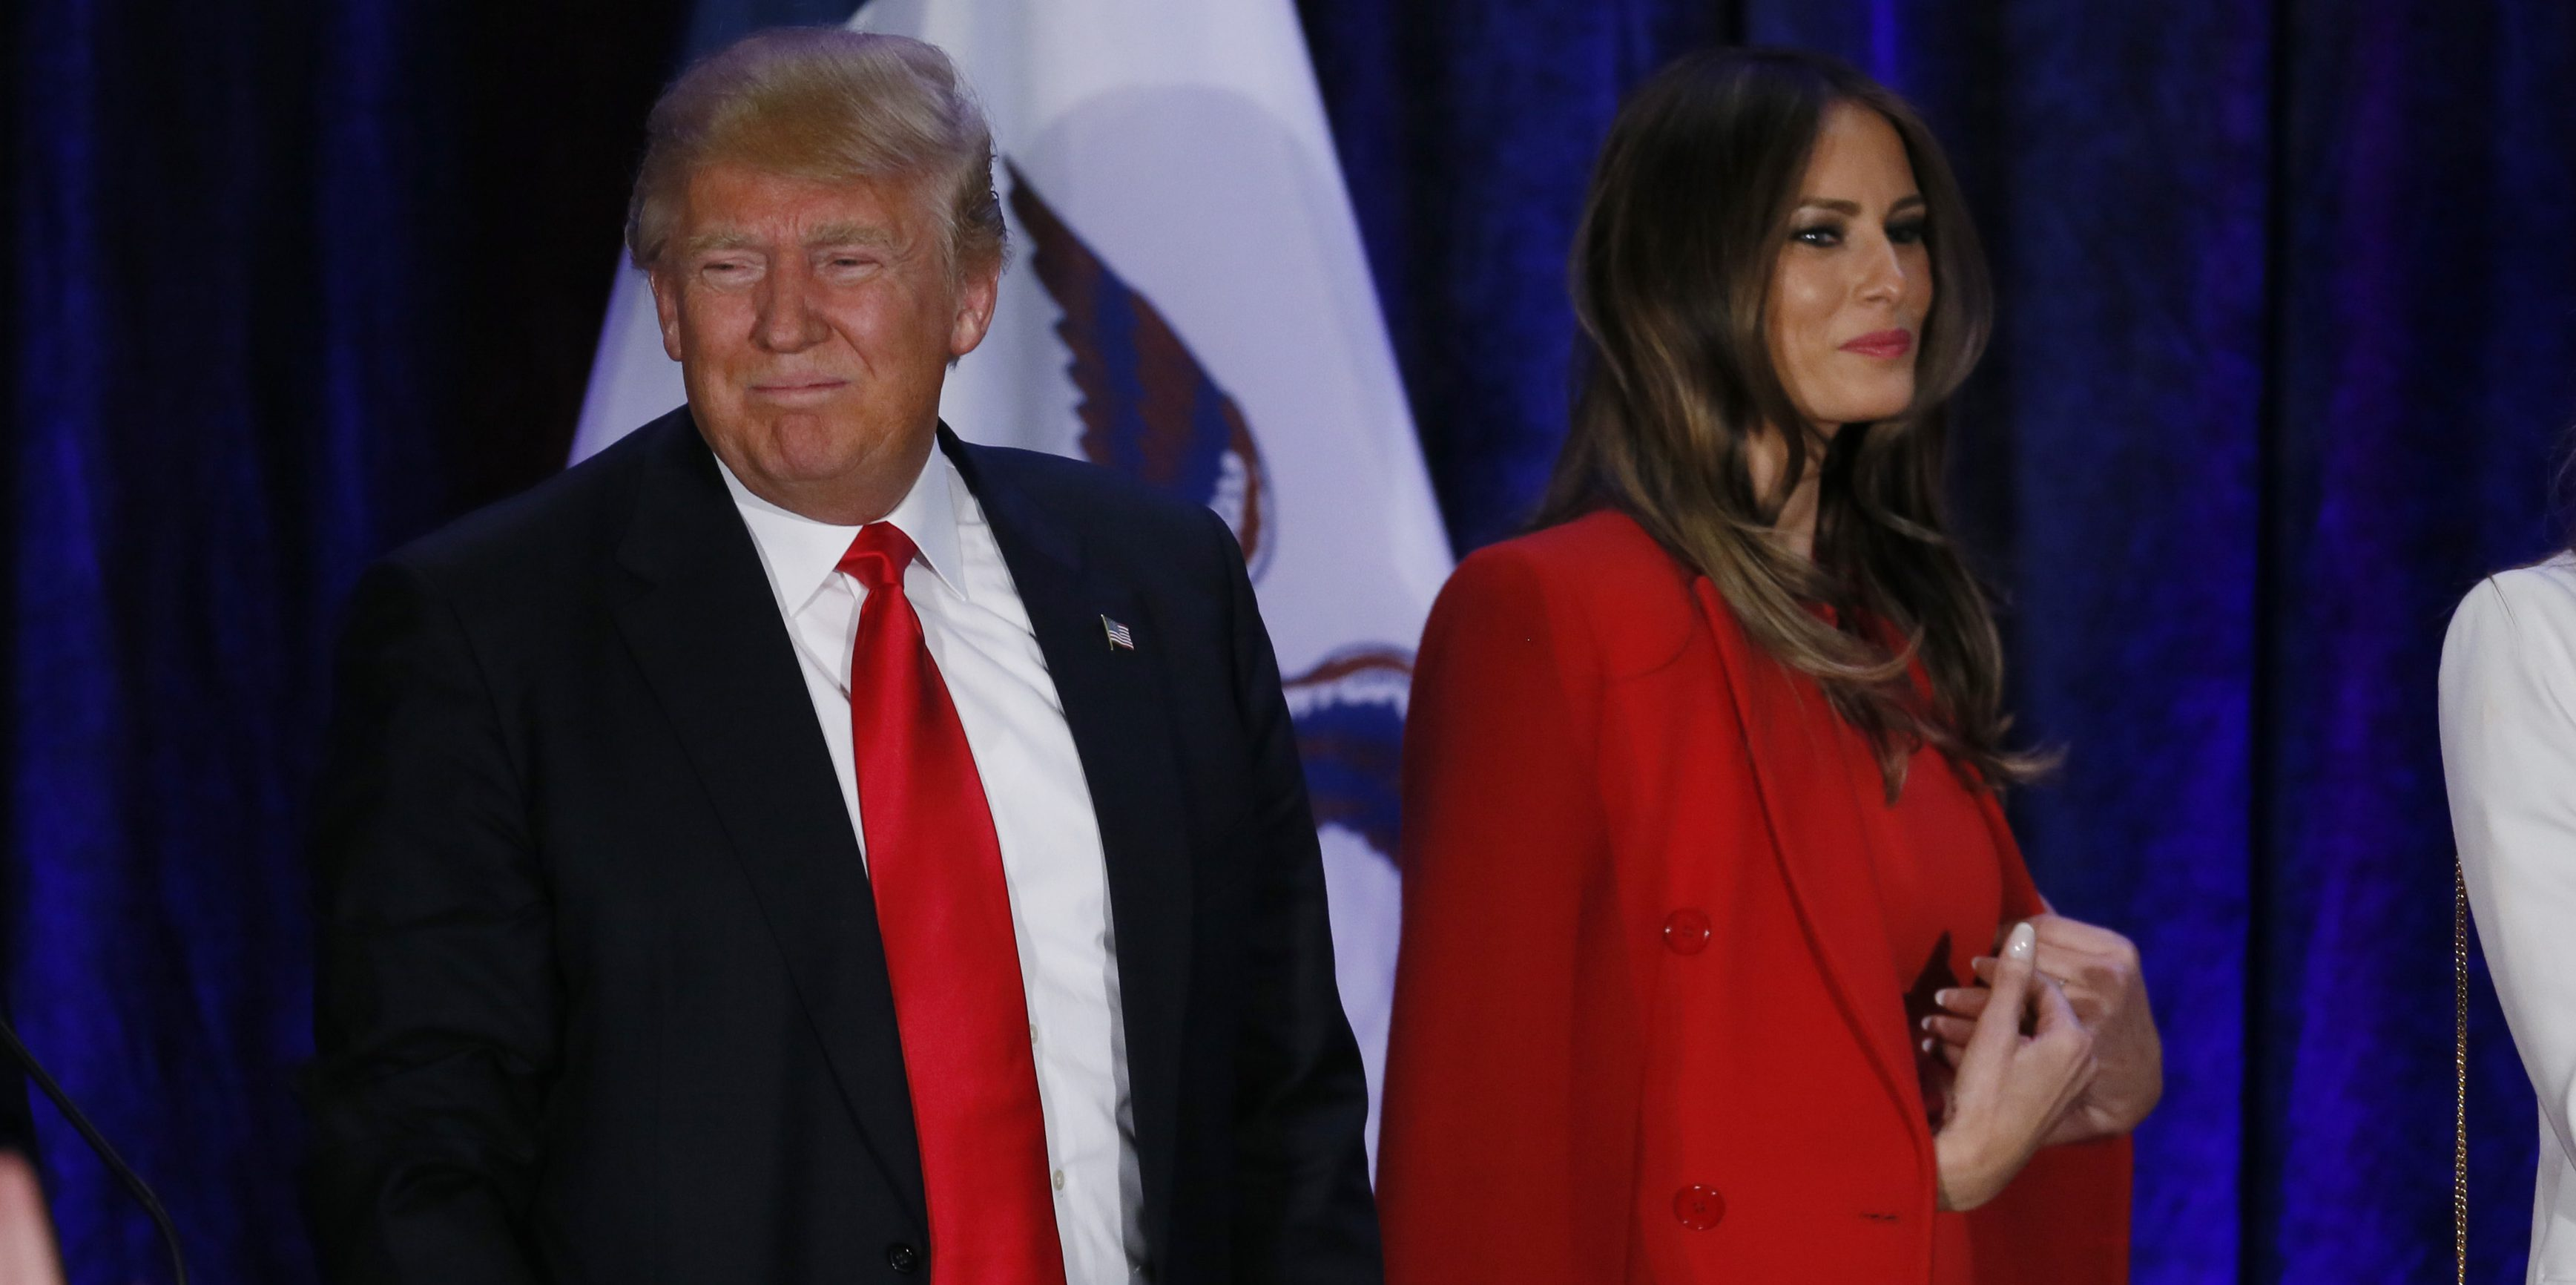 Republican U.S. presidential candidate Donald Trump and his wife Melania leave the stage at his caucus night rally in Des Moines